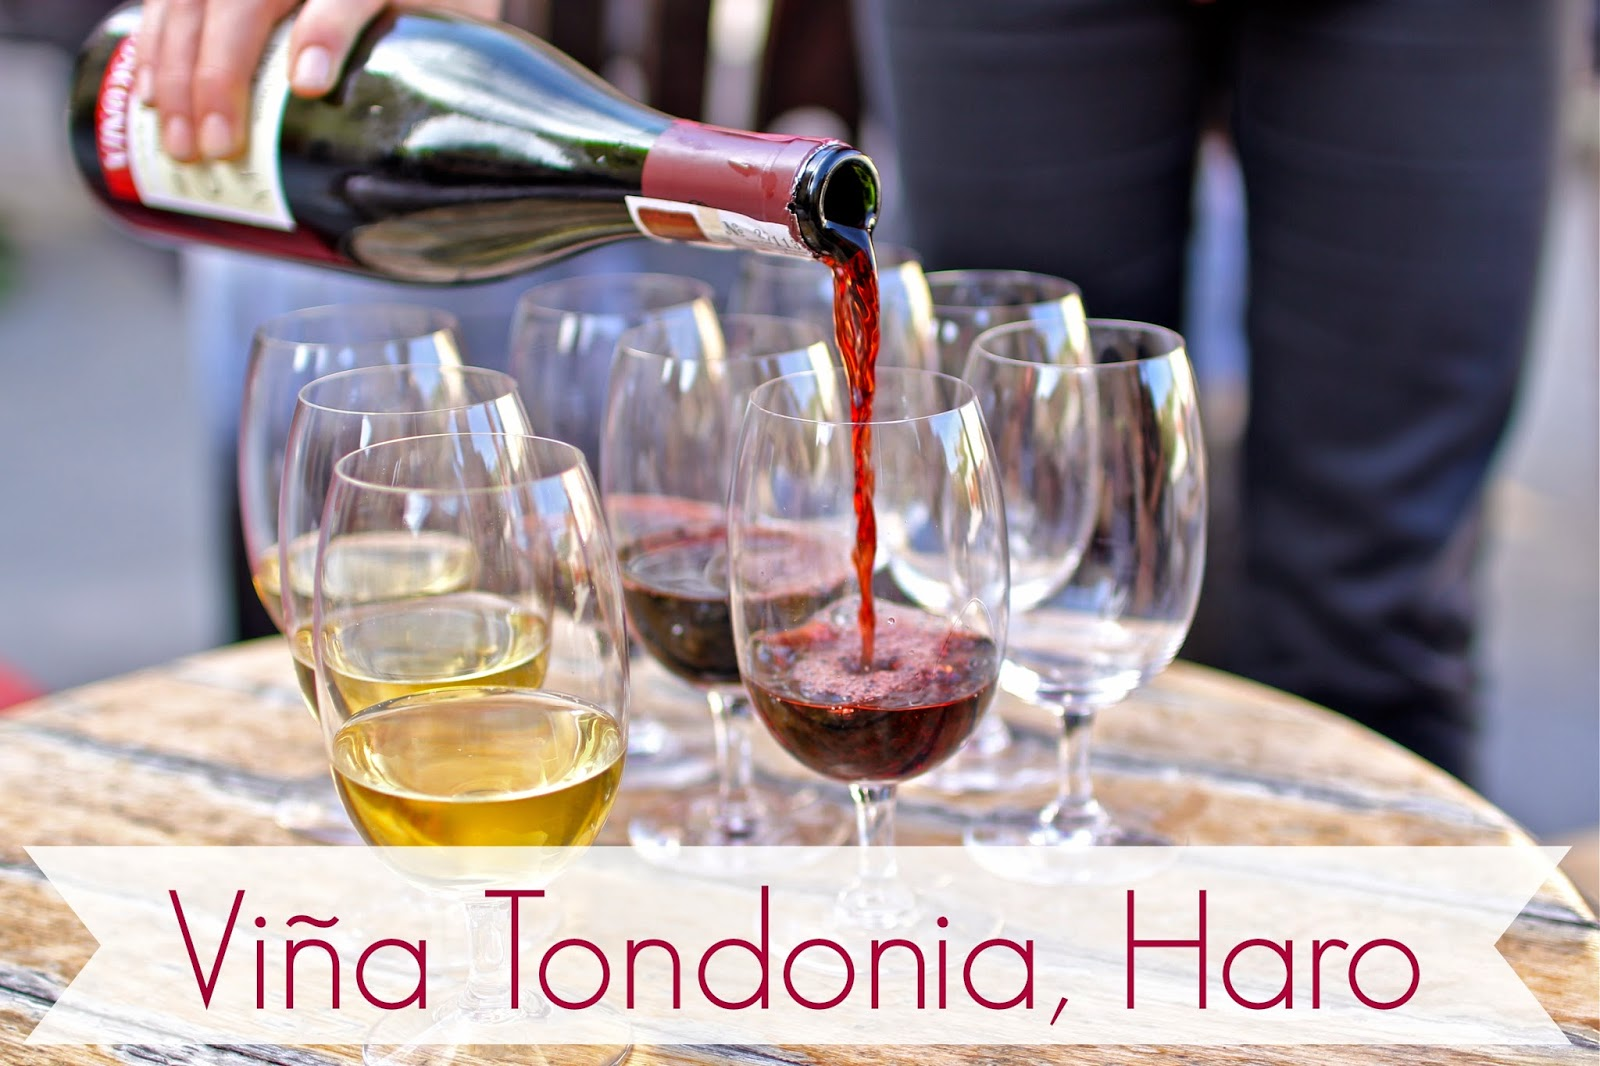 Wine Tasting in Haro, La Rioja - the heart of Spanish wine country